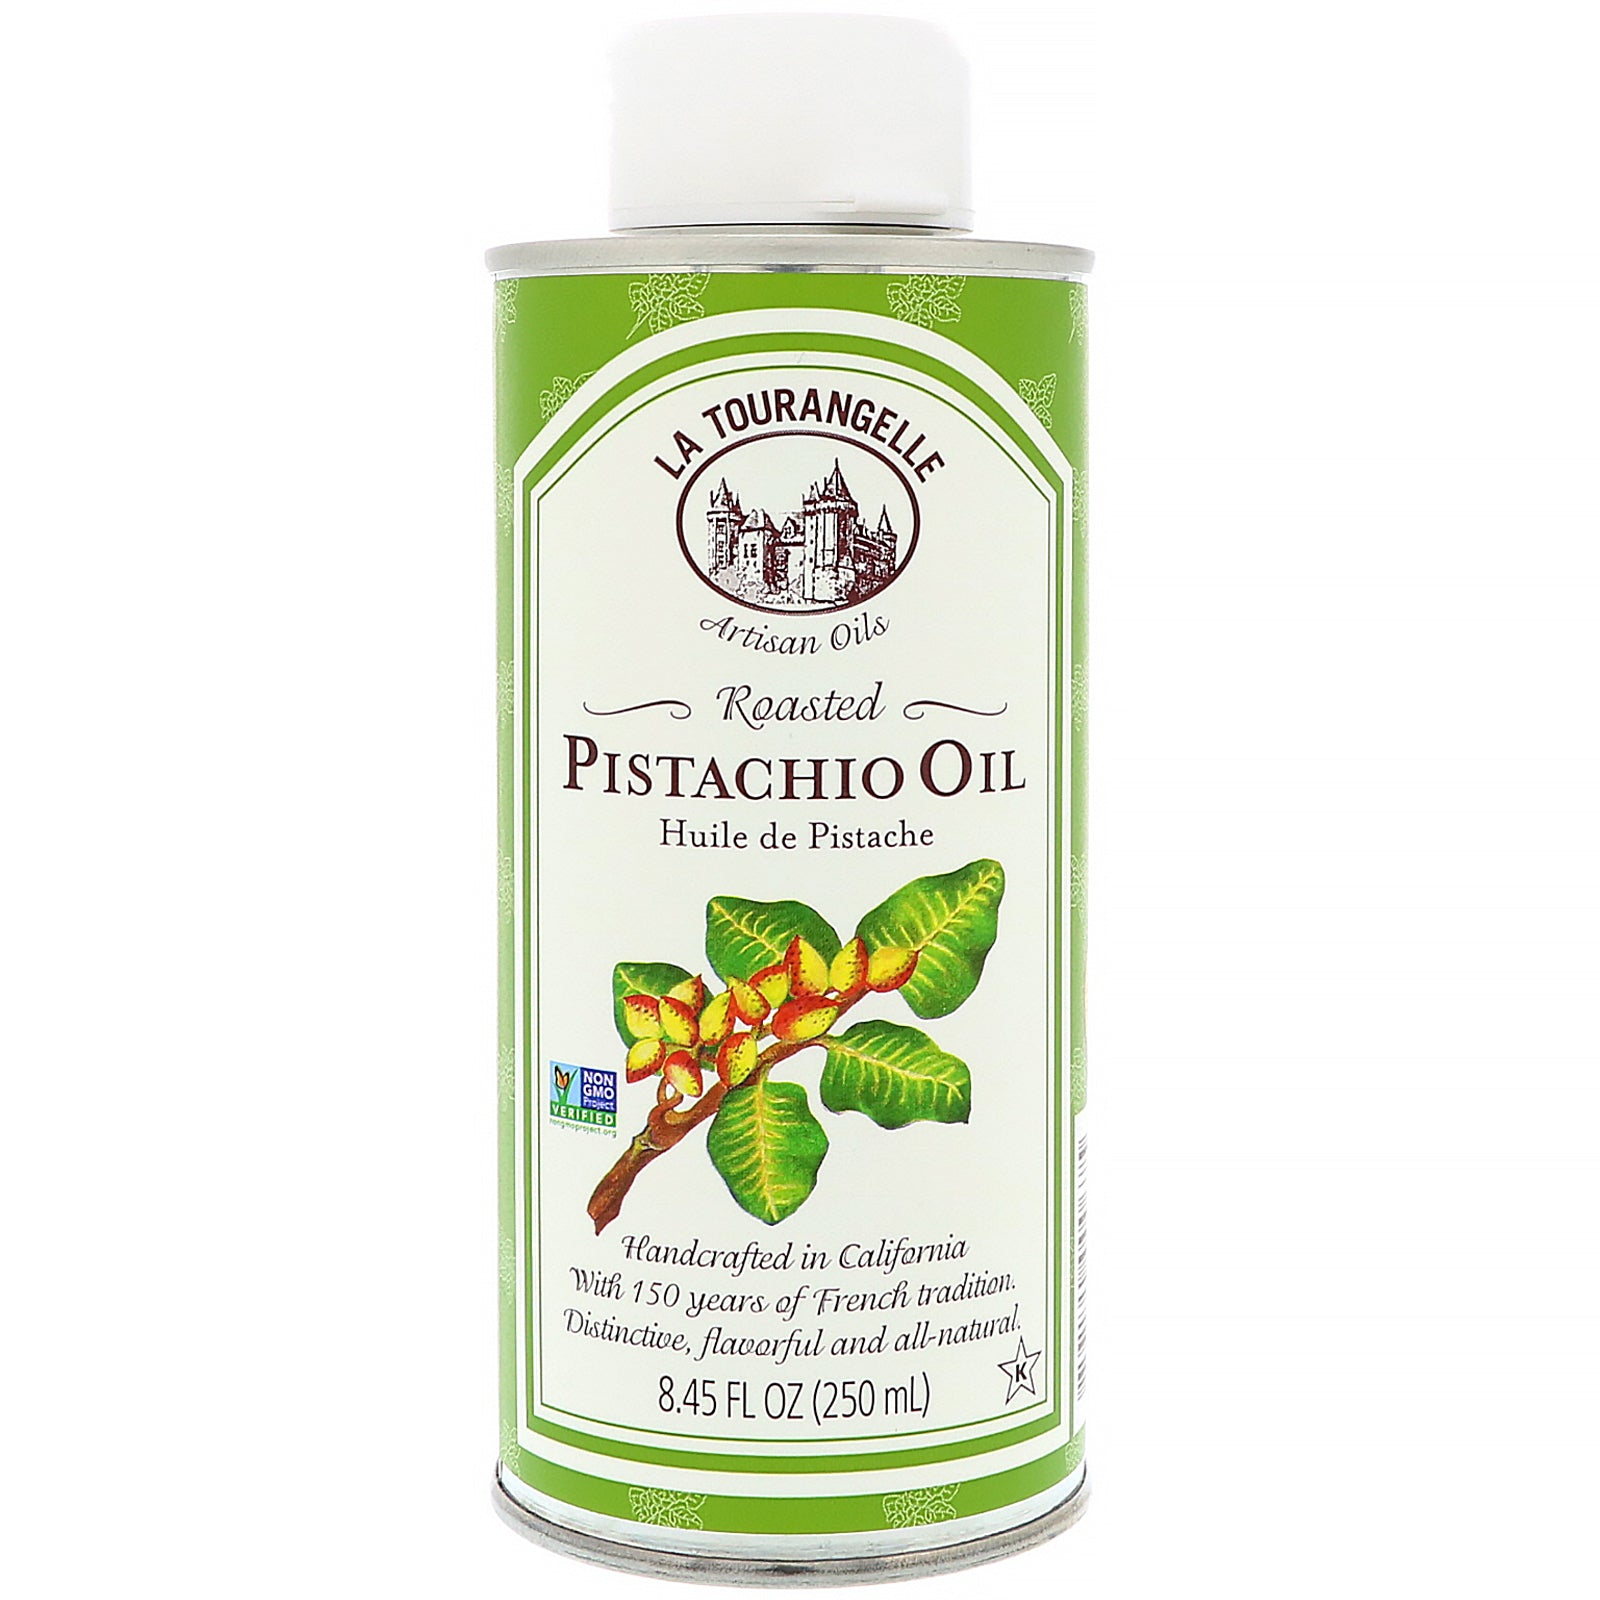 La Tourangelle Pistachio Oil 250ml